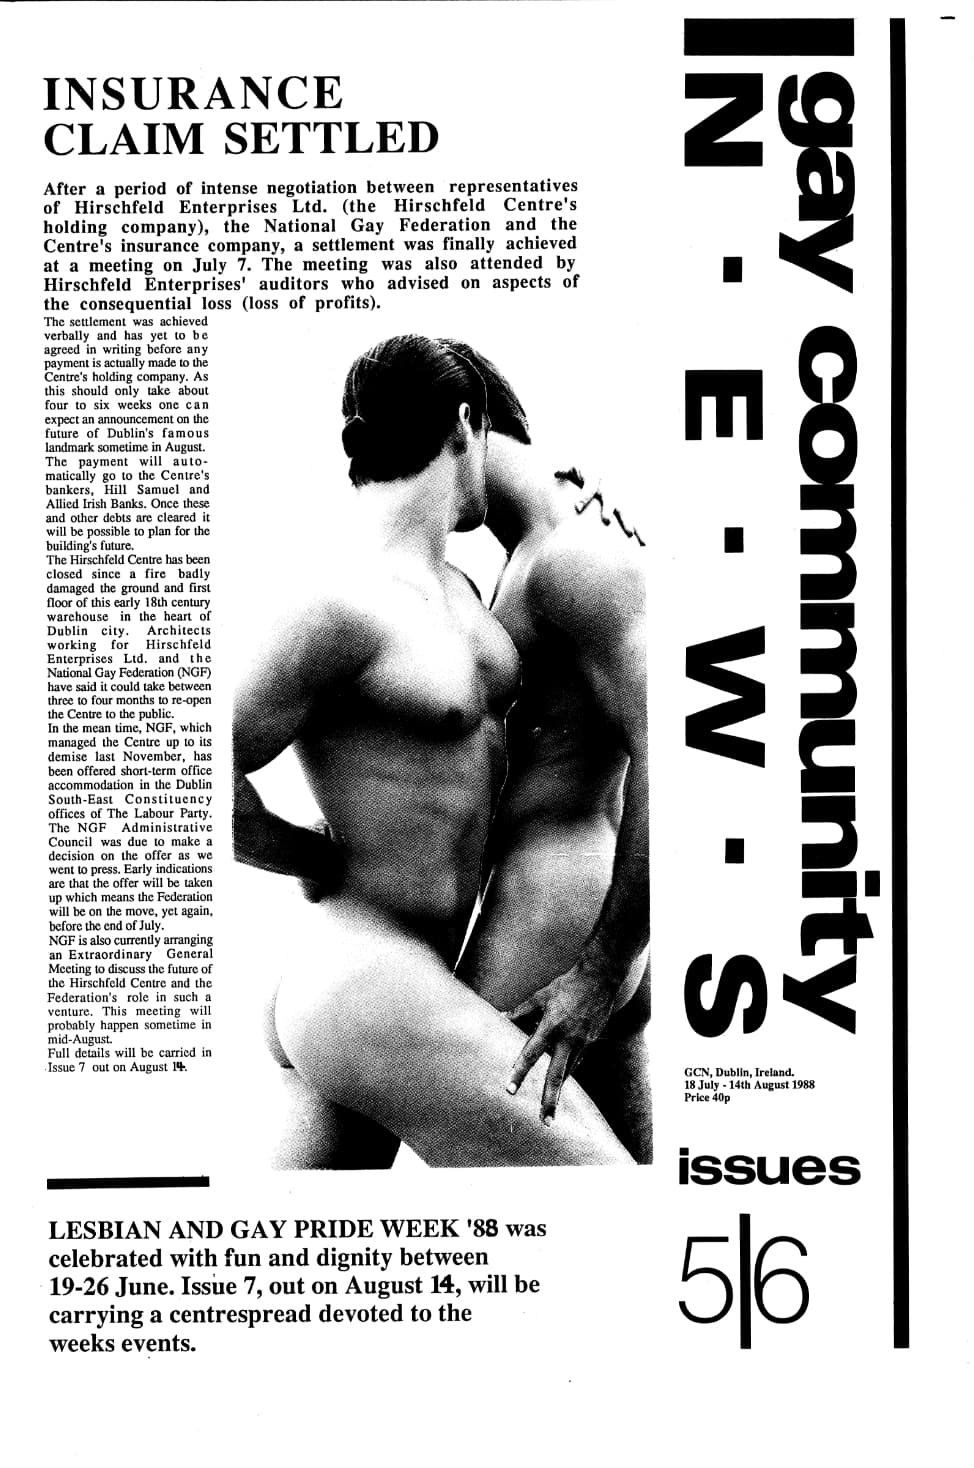 """Taking a look at the production process of GCN: Front page of GCN's issue 5/6, two naked men kissing on the cover. The headline reads """"Insurance claim settled""""."""